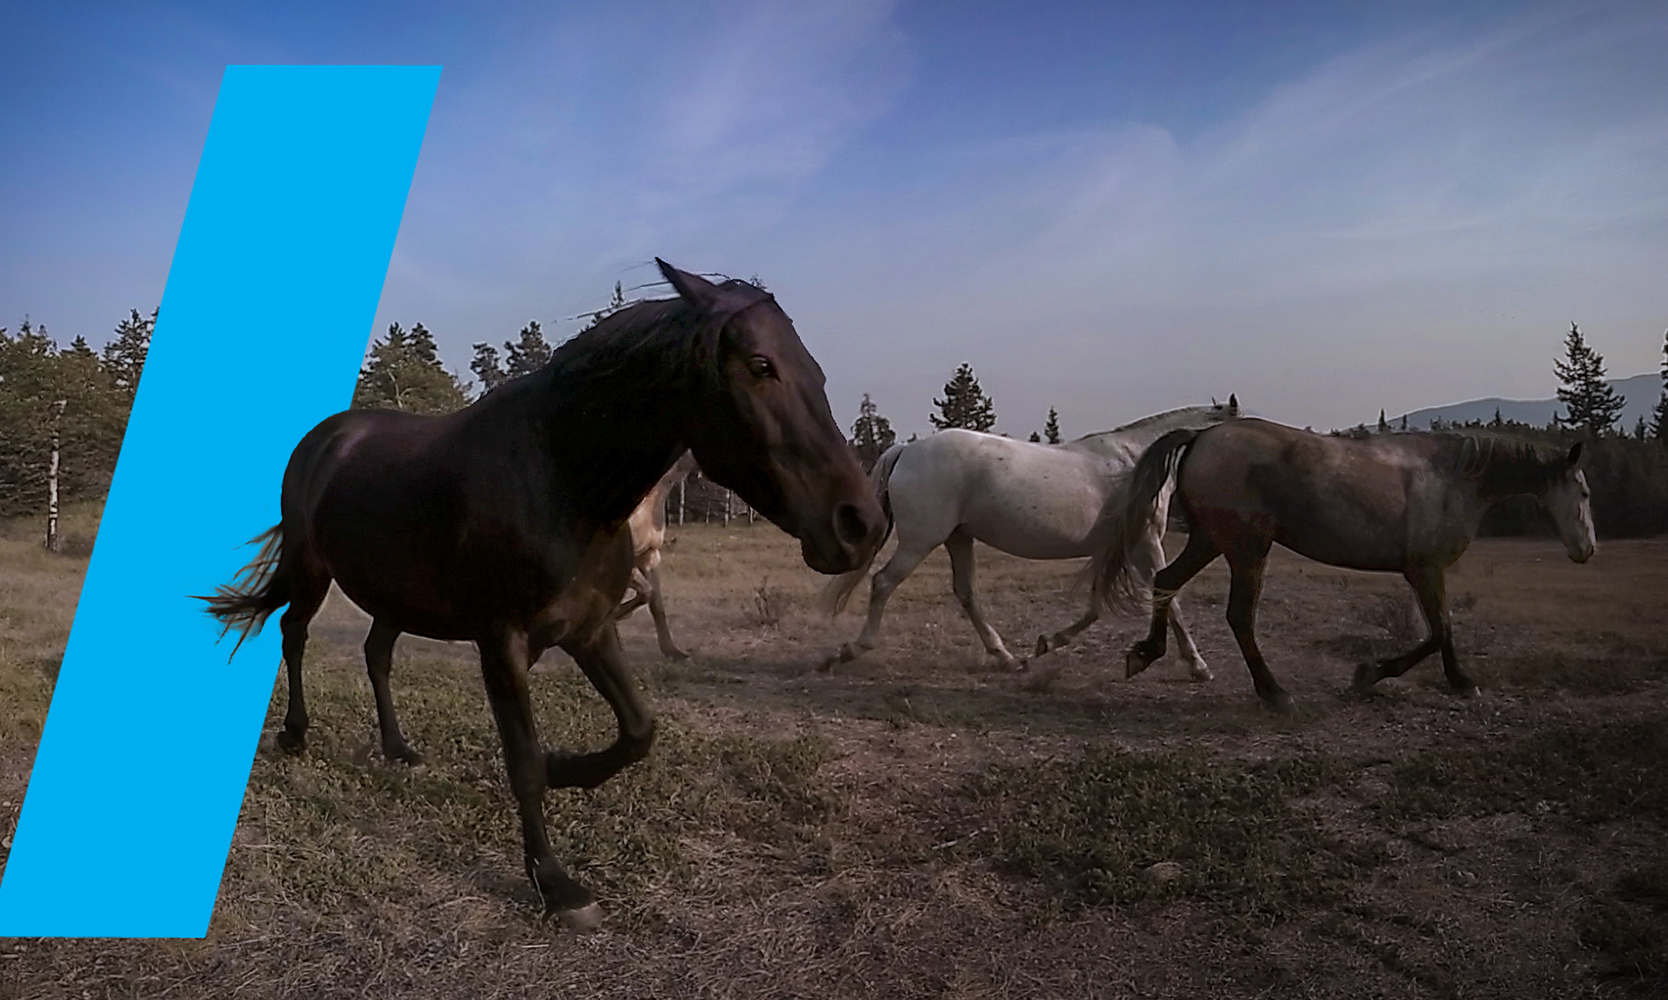 Youtube VR & Discovery Channel – Wild/